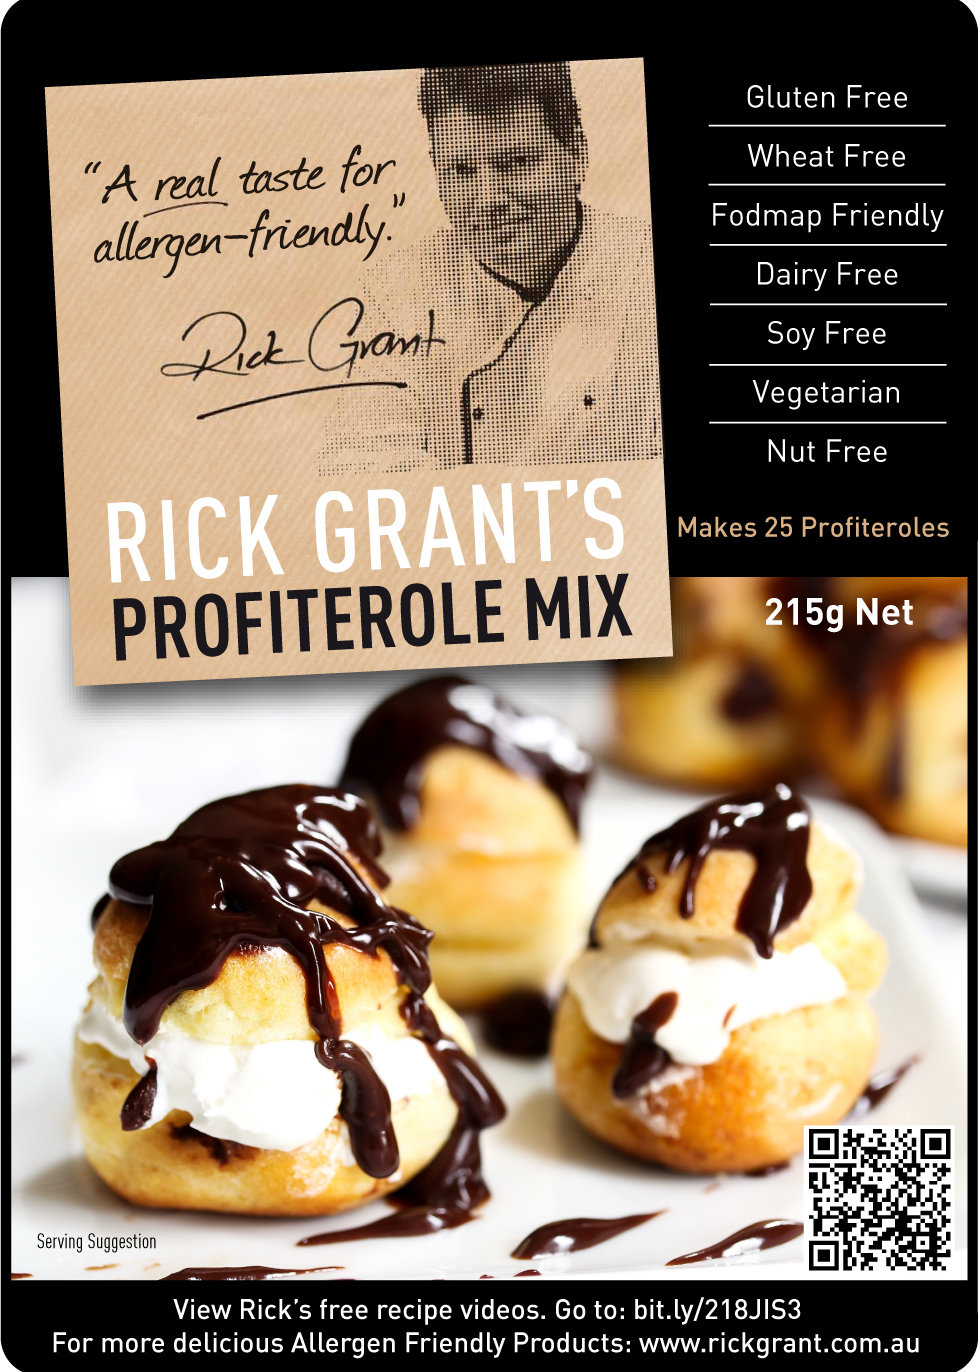 Profiterole Mix. Now you can make delicious Profiteroles, Eclairs or Paris Brest. Follow the instructions on the pack. No one will even know that they are gluten free and Fodmap Friendly!